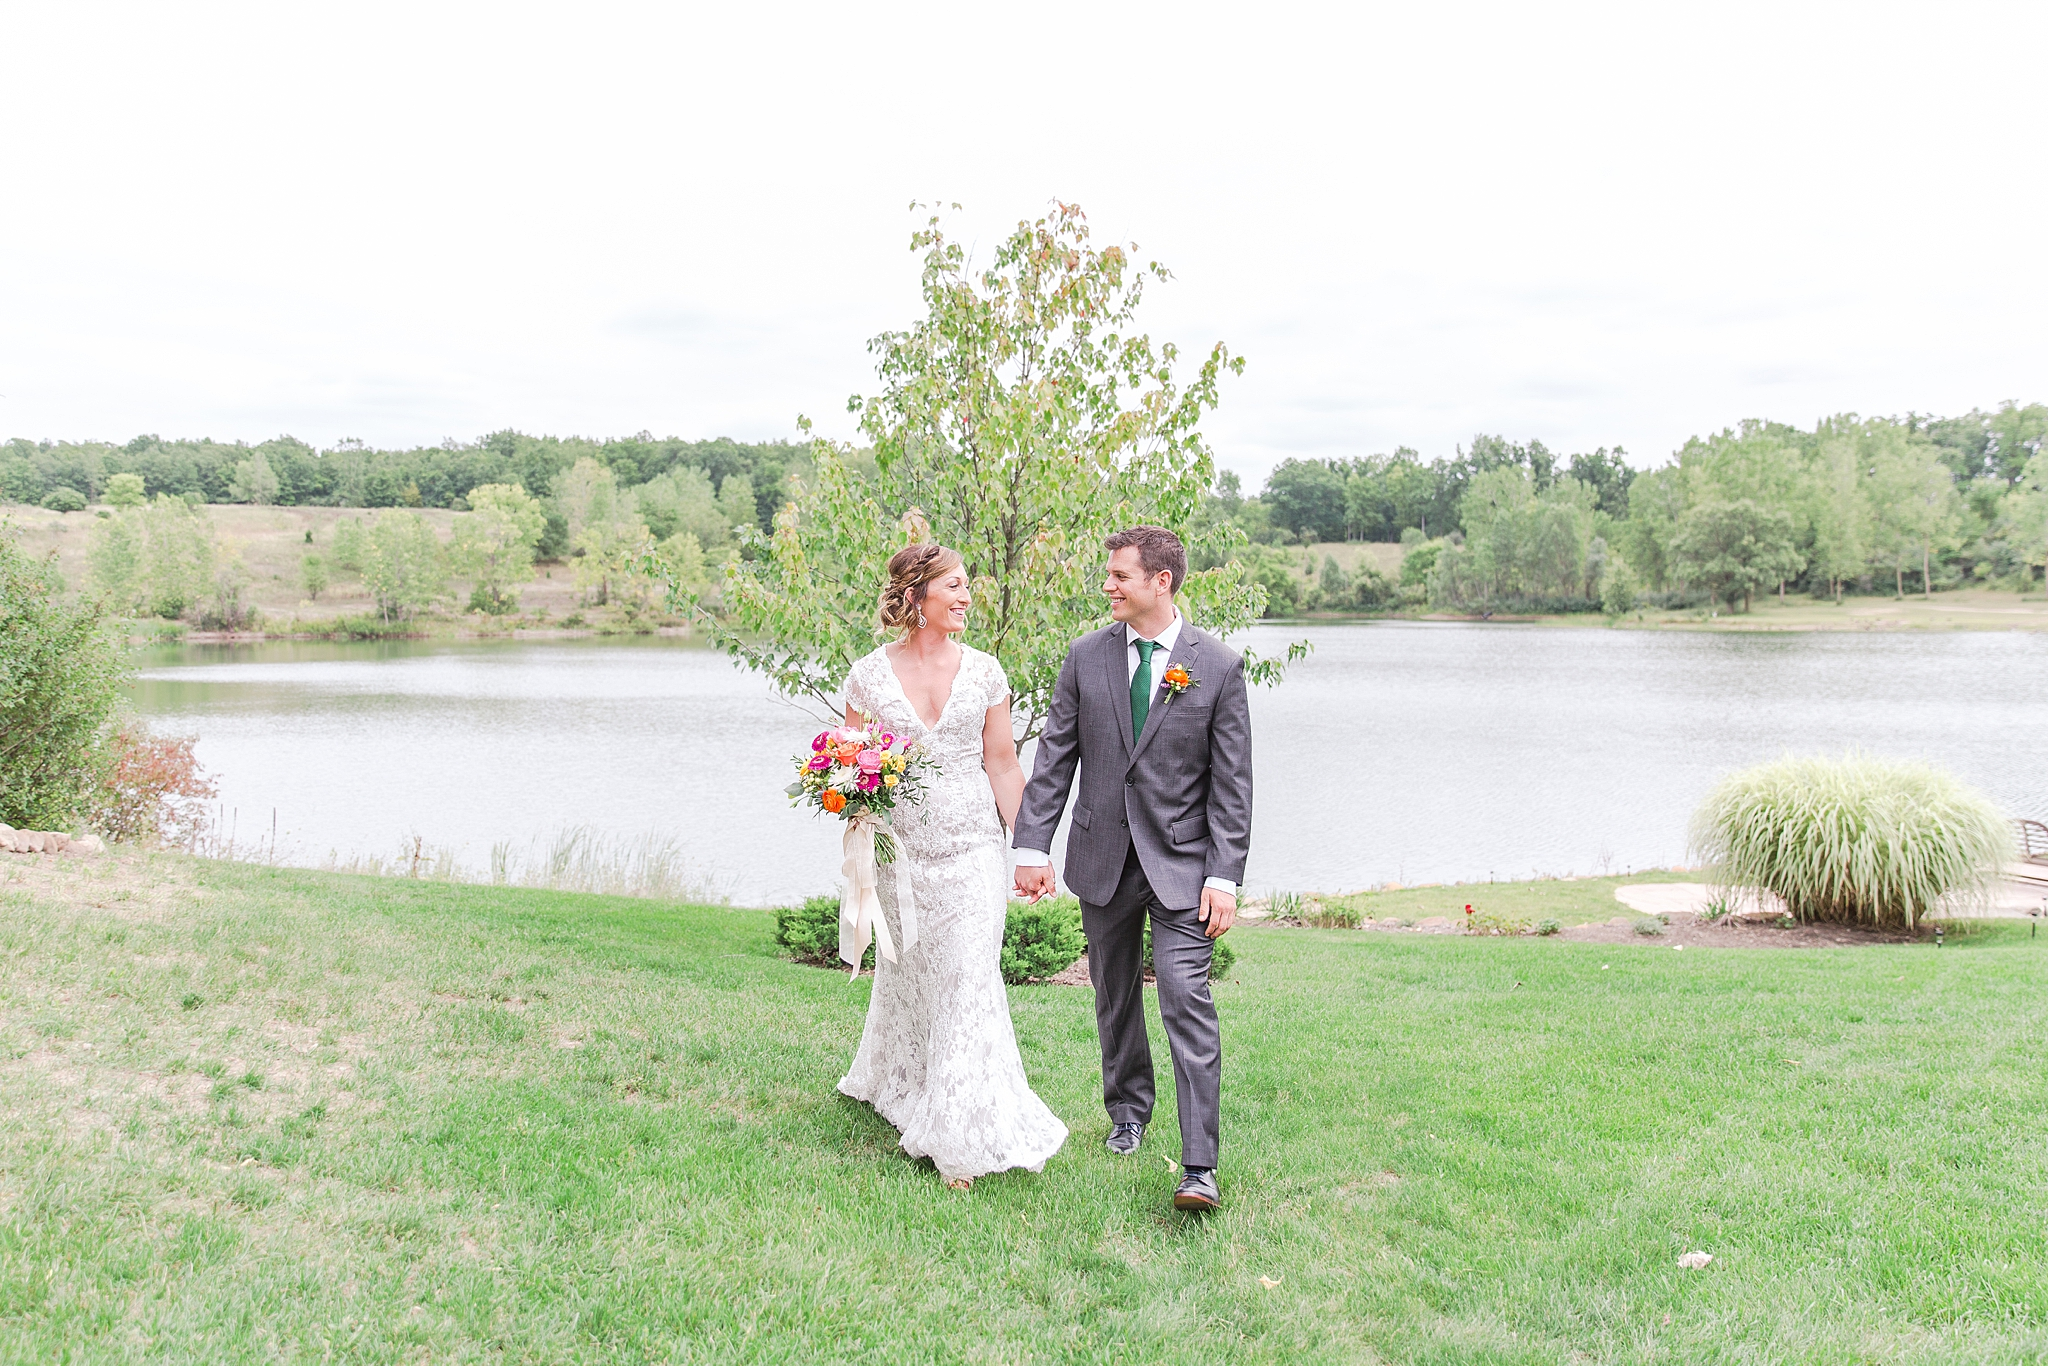 private-lakefront-estate-wedding-photography-in-ann-arbor-michigan-by-courtney-carolyn-photography_0001.jpg